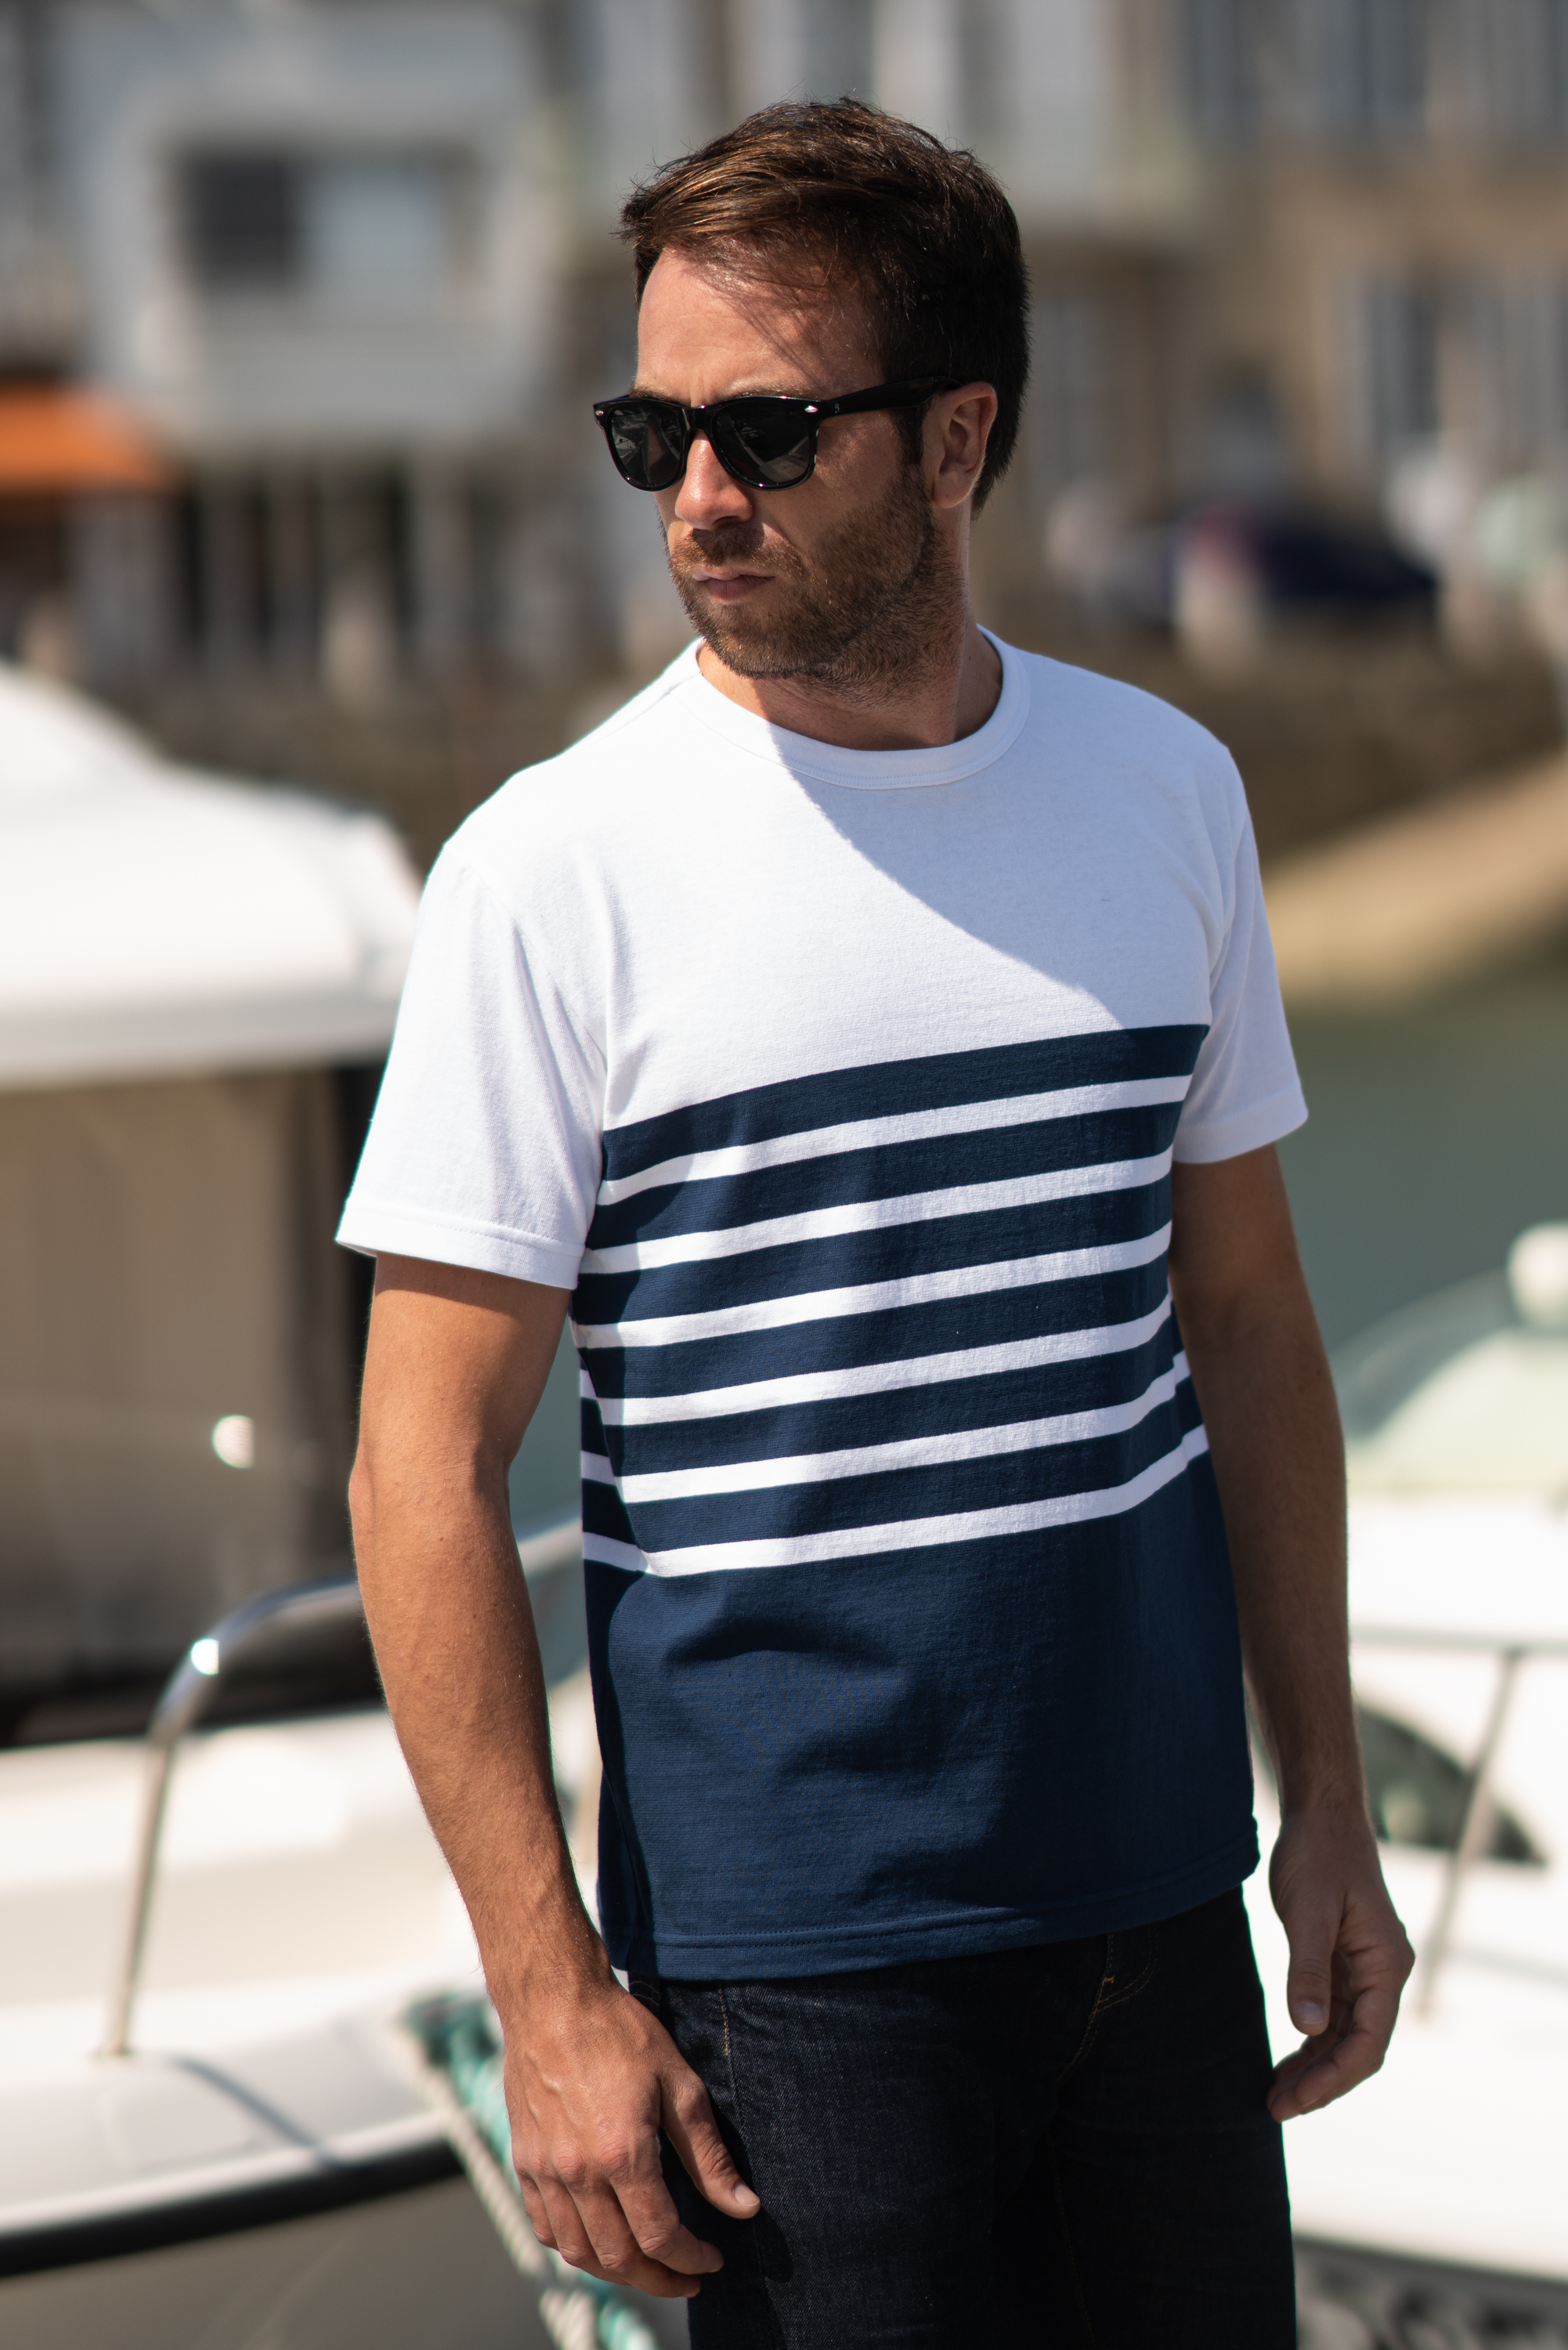 Mariniere_Frenchaholic_made_in_France_revisite_blanc_marine-3